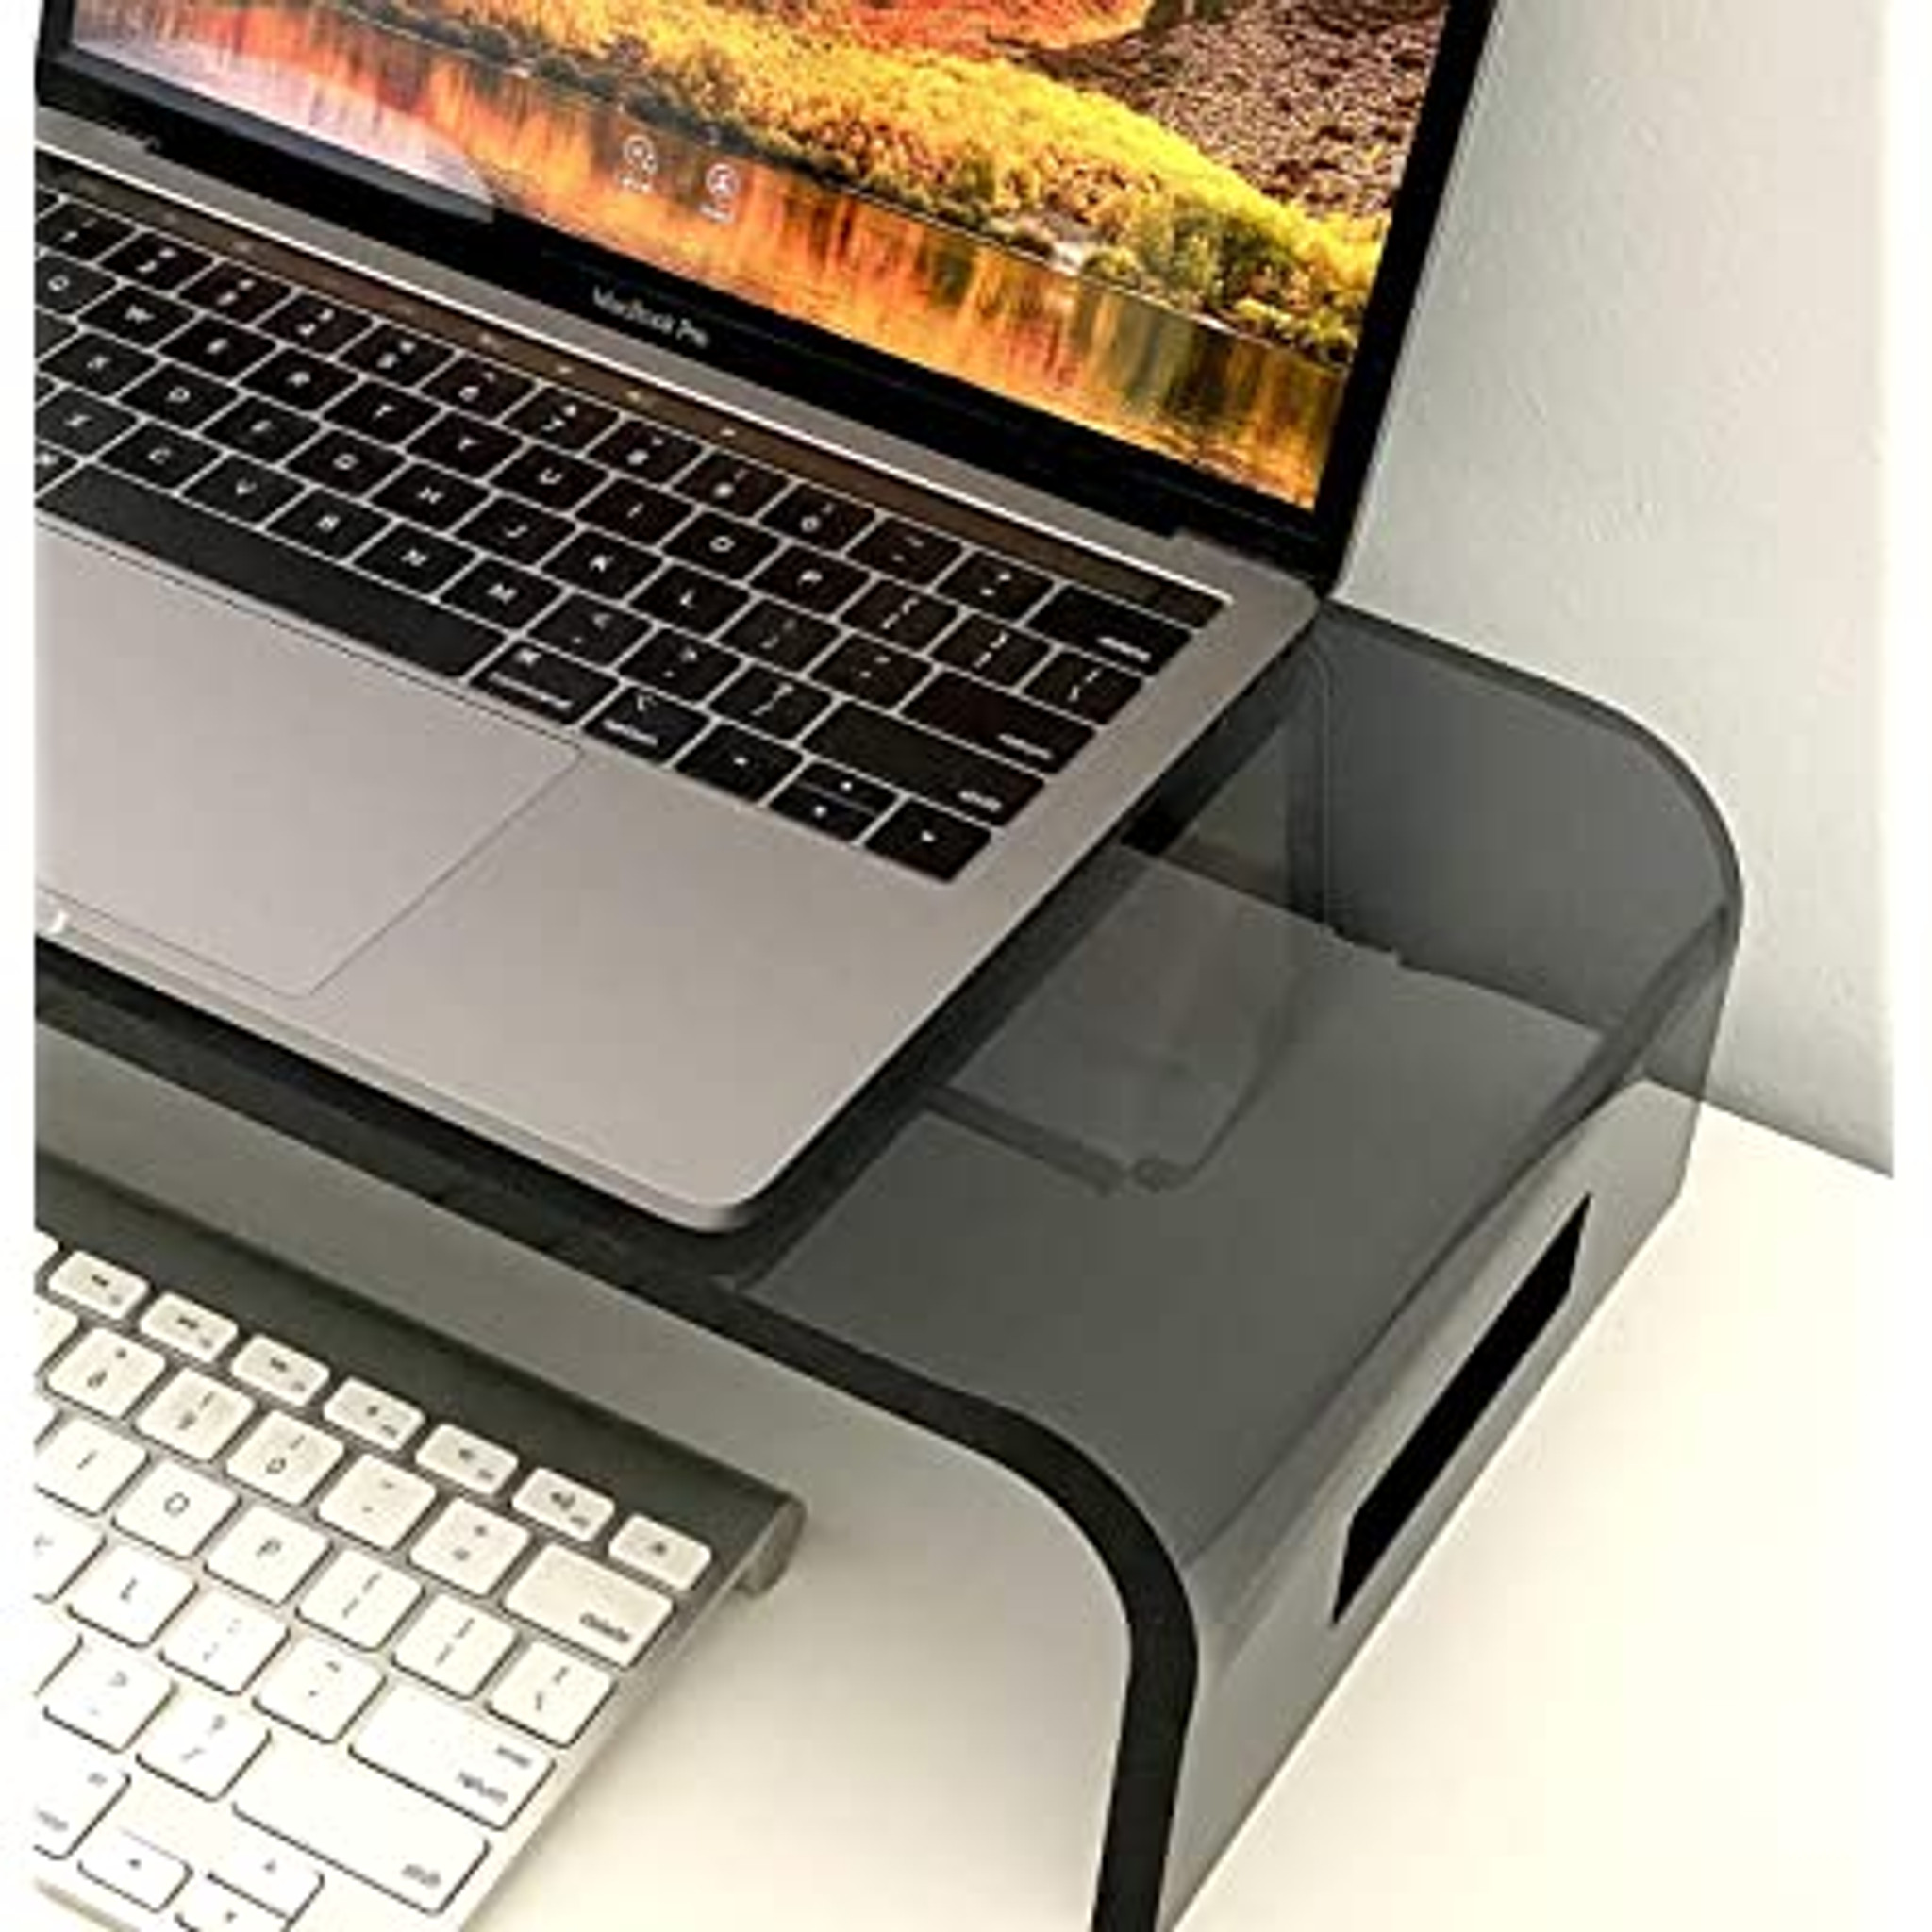 A Smoke Grey Acrylic Computer Riser is designed to raise your monitor height and store your keyboard underneath.